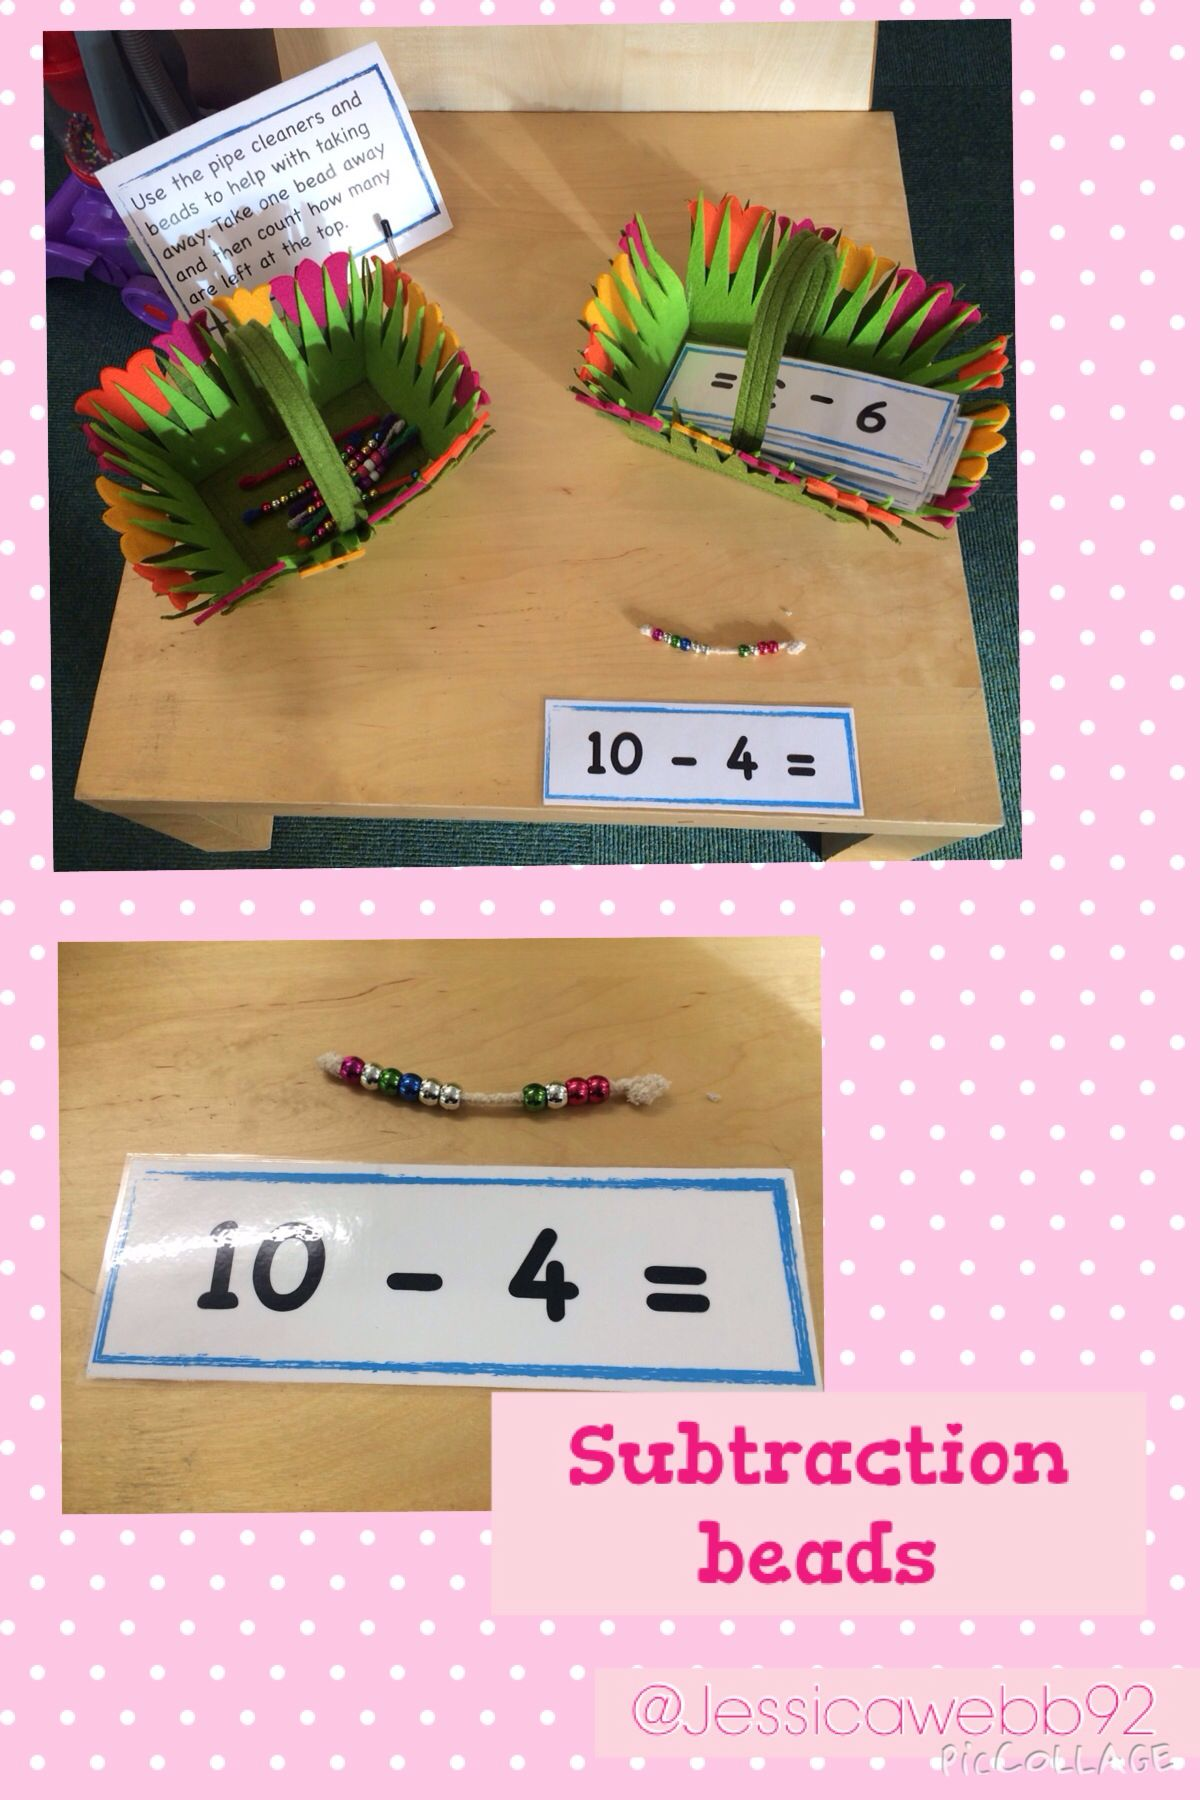 Subtraction Beads Take Away The Correct Number Of Beads